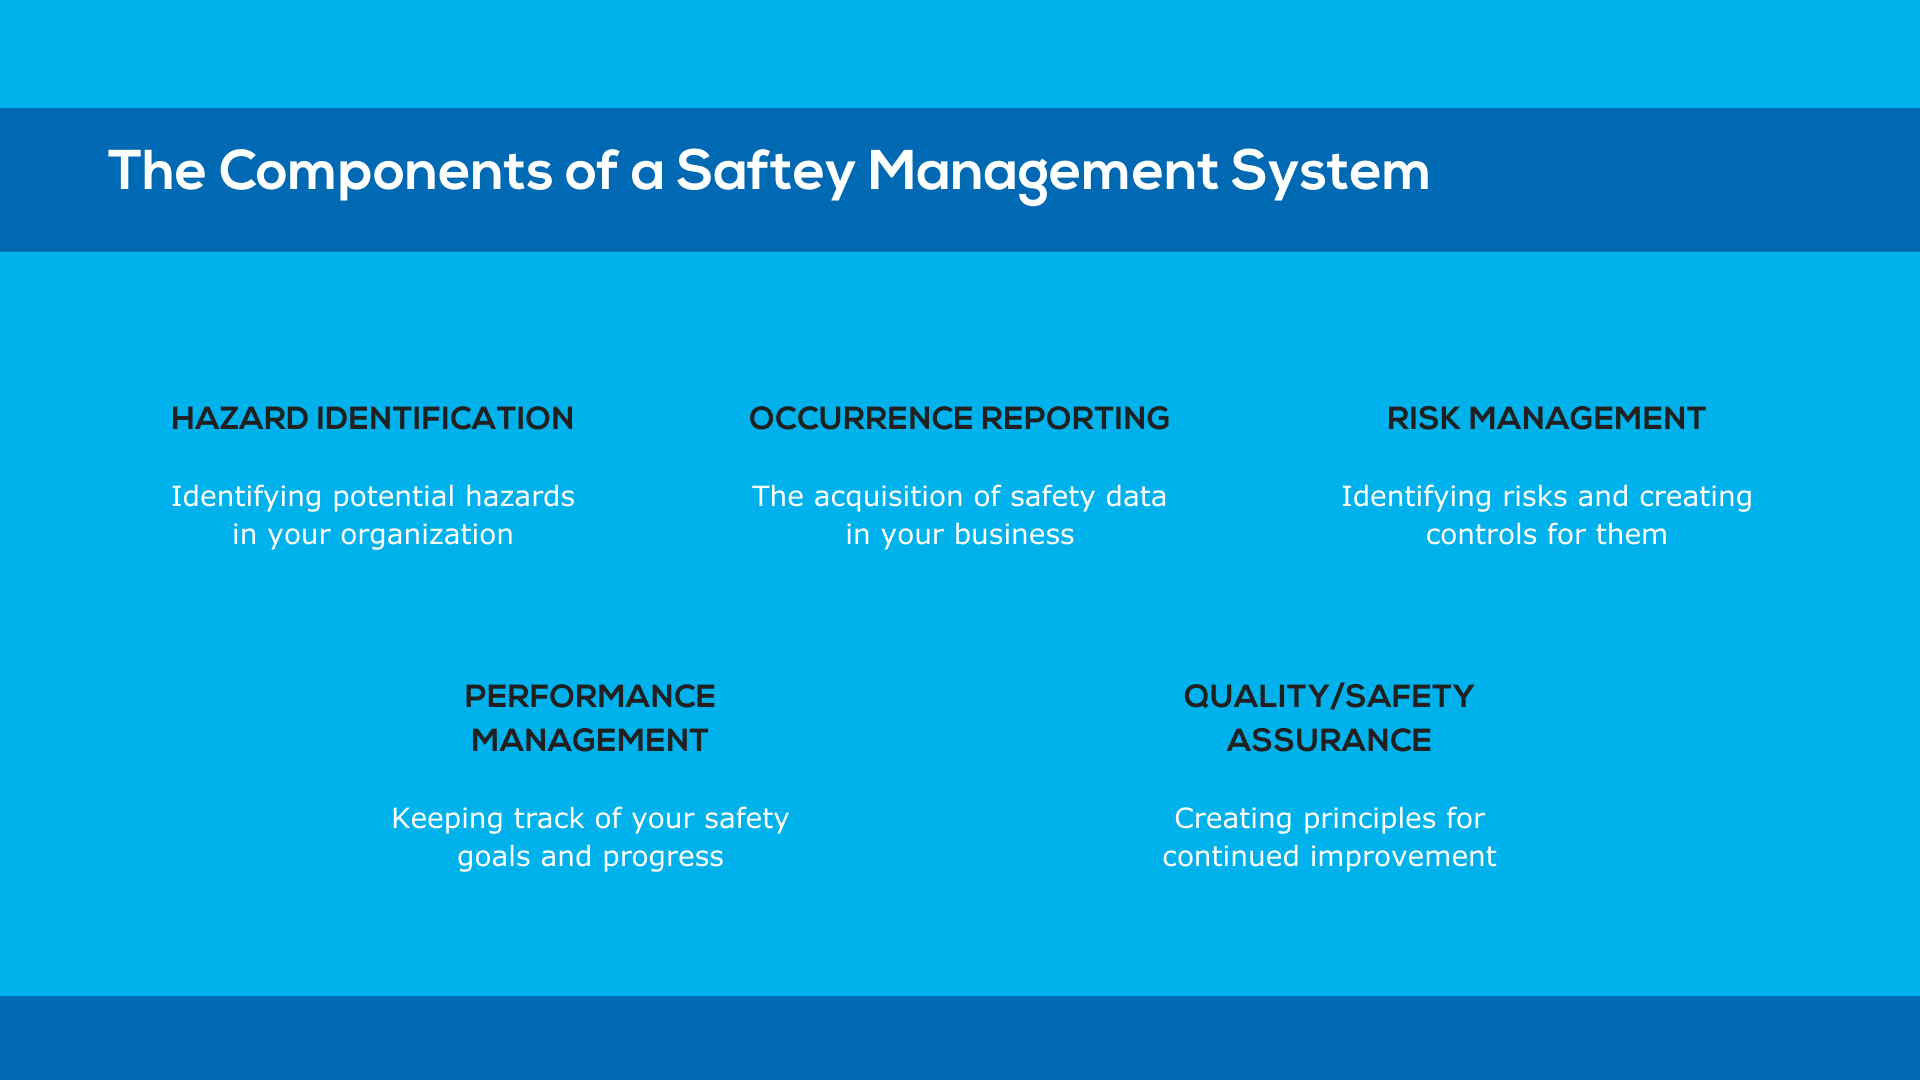 The 5 components of a safety management system